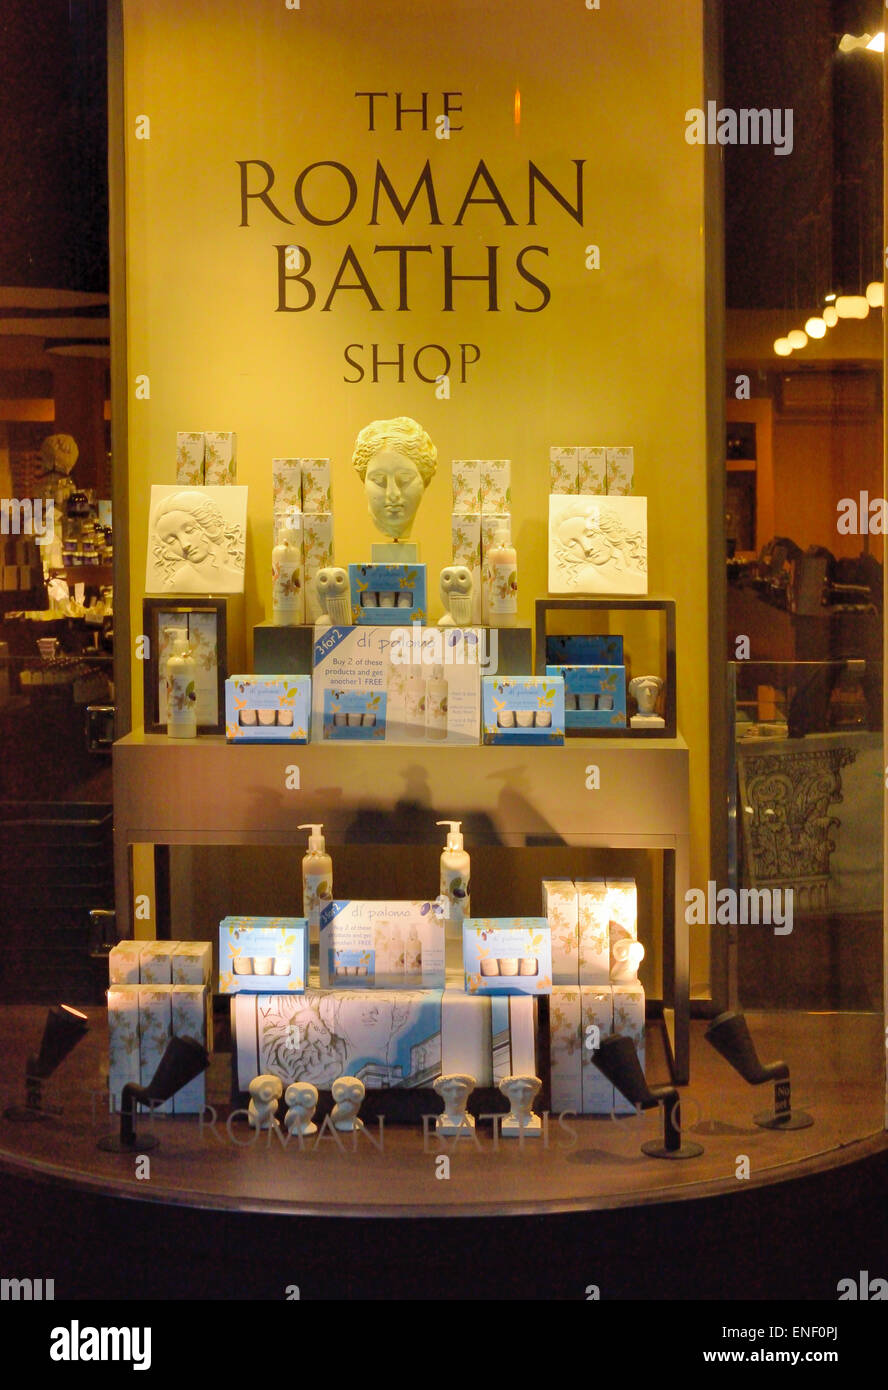 Roman Baths Shop Bath Northeast Somerset England UK Stock Photo ...